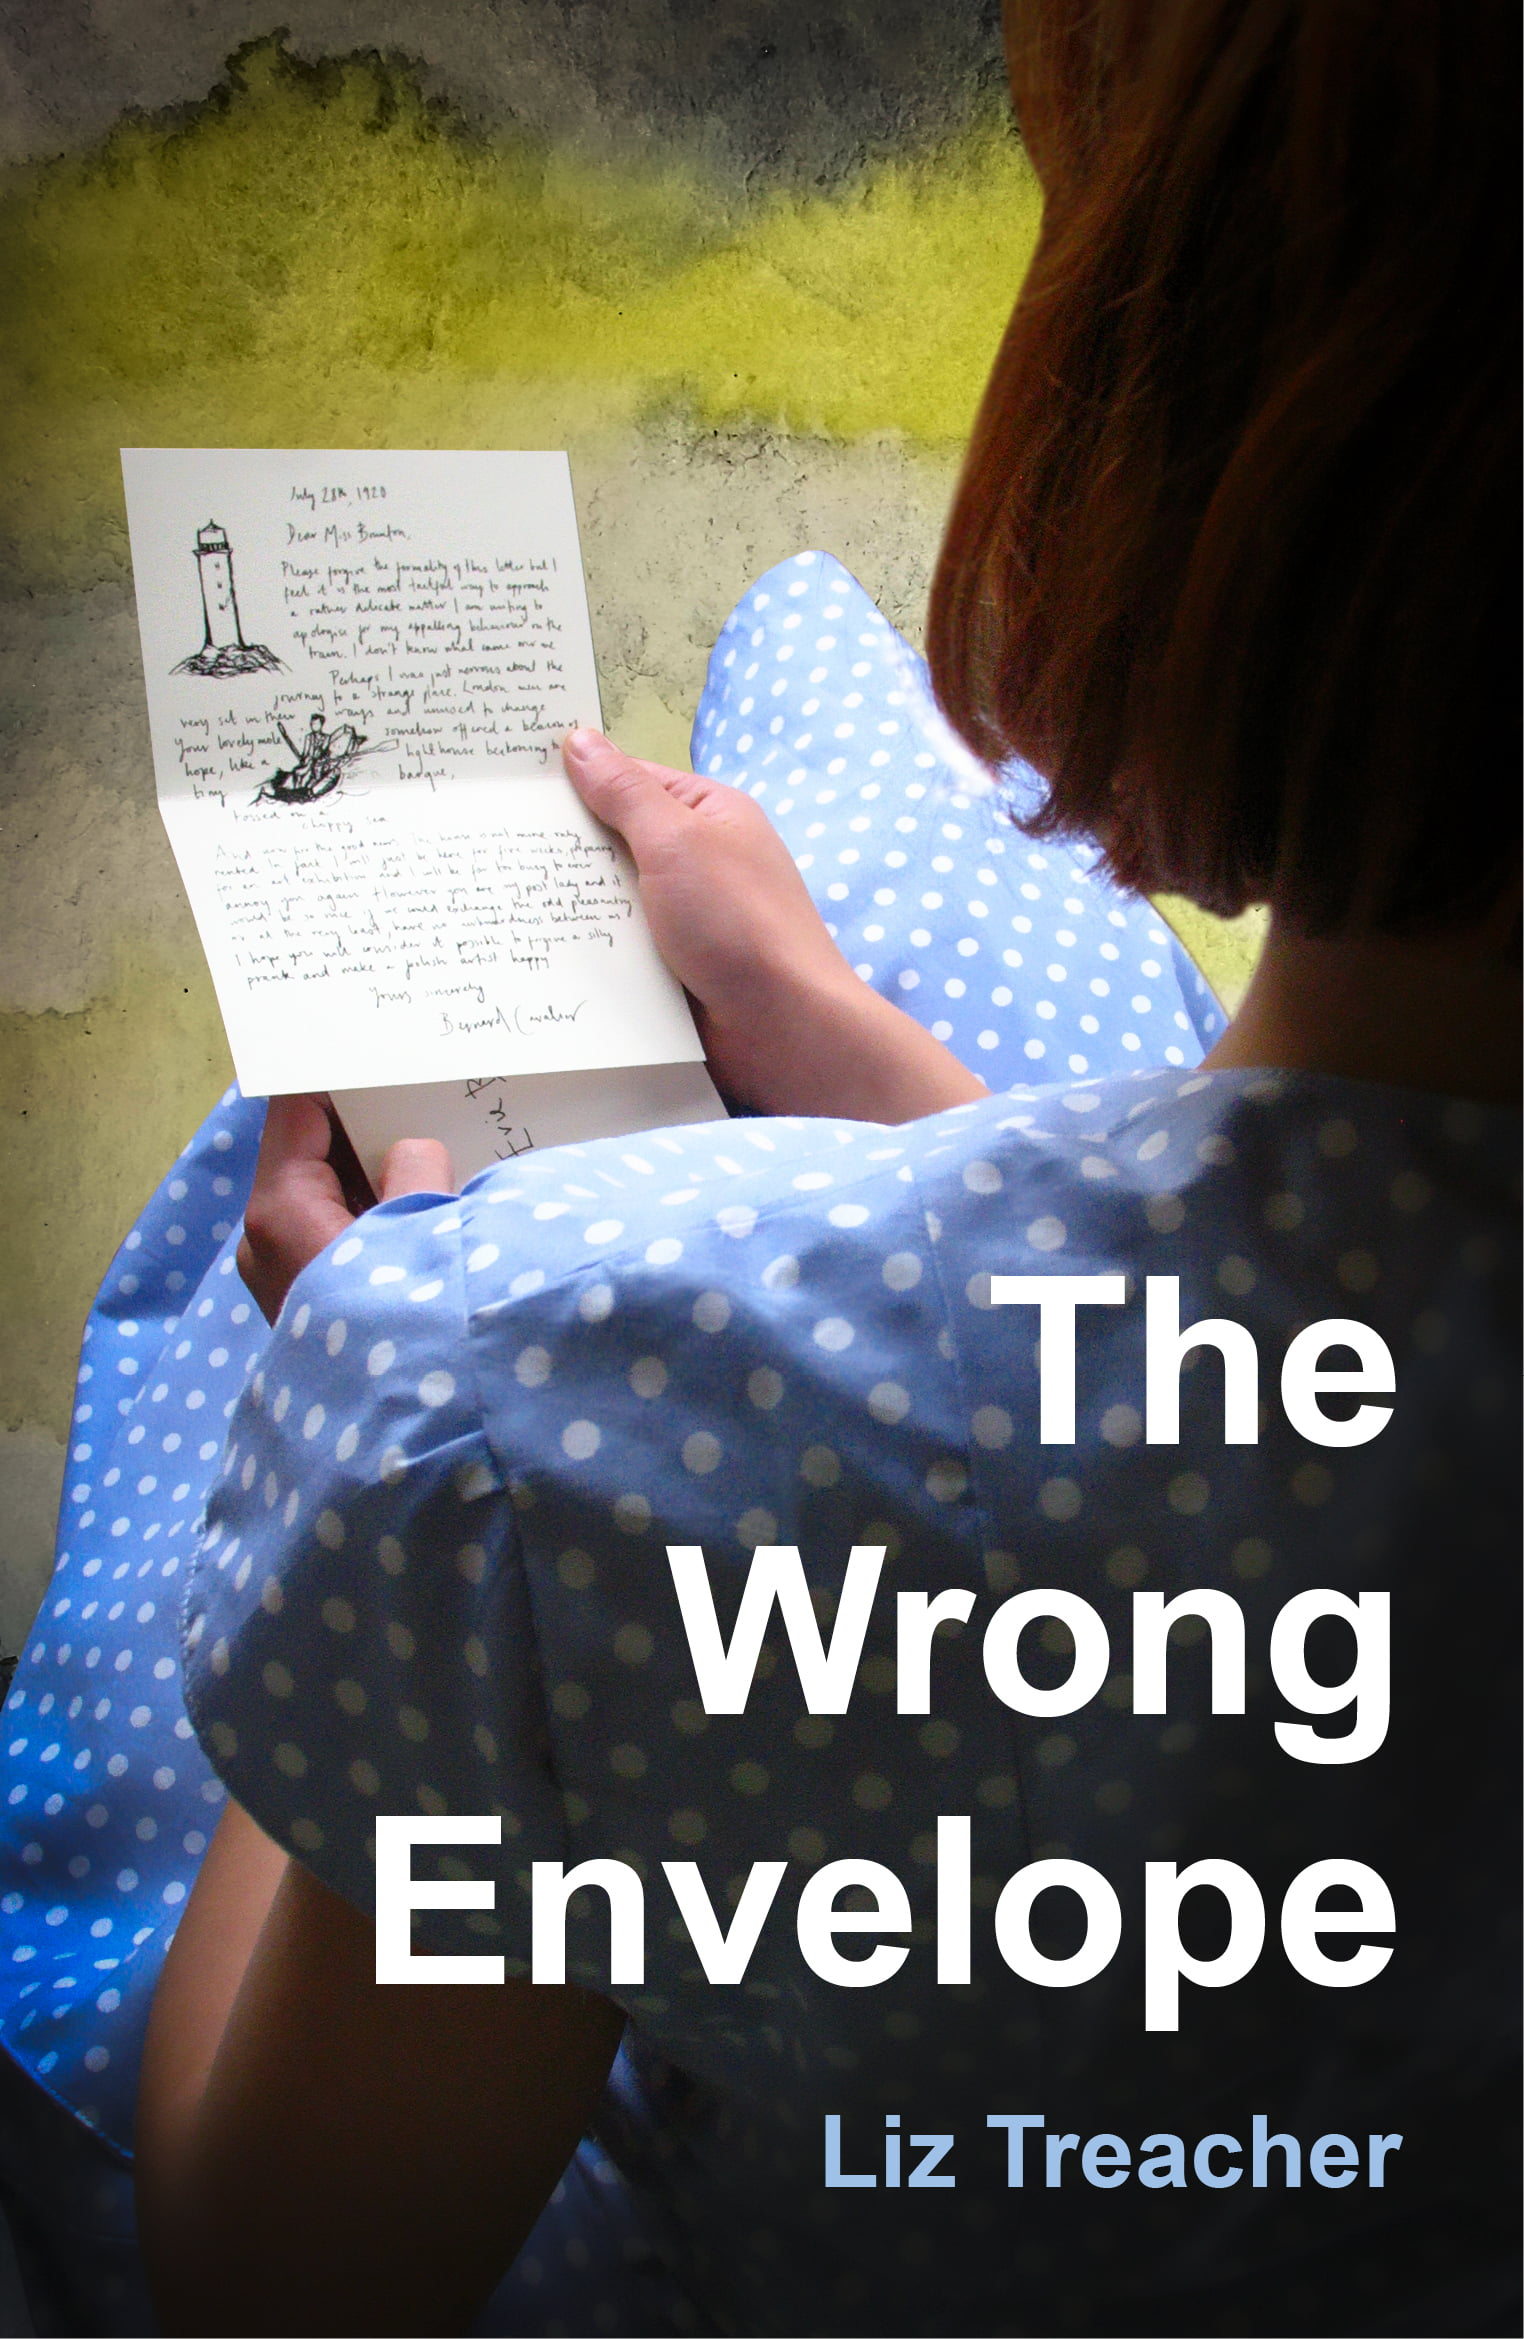 The Wrong Envelope by Liz Treacher |Blog Blitz Extract |#TheWrongEnvelope #LoveBooksTours